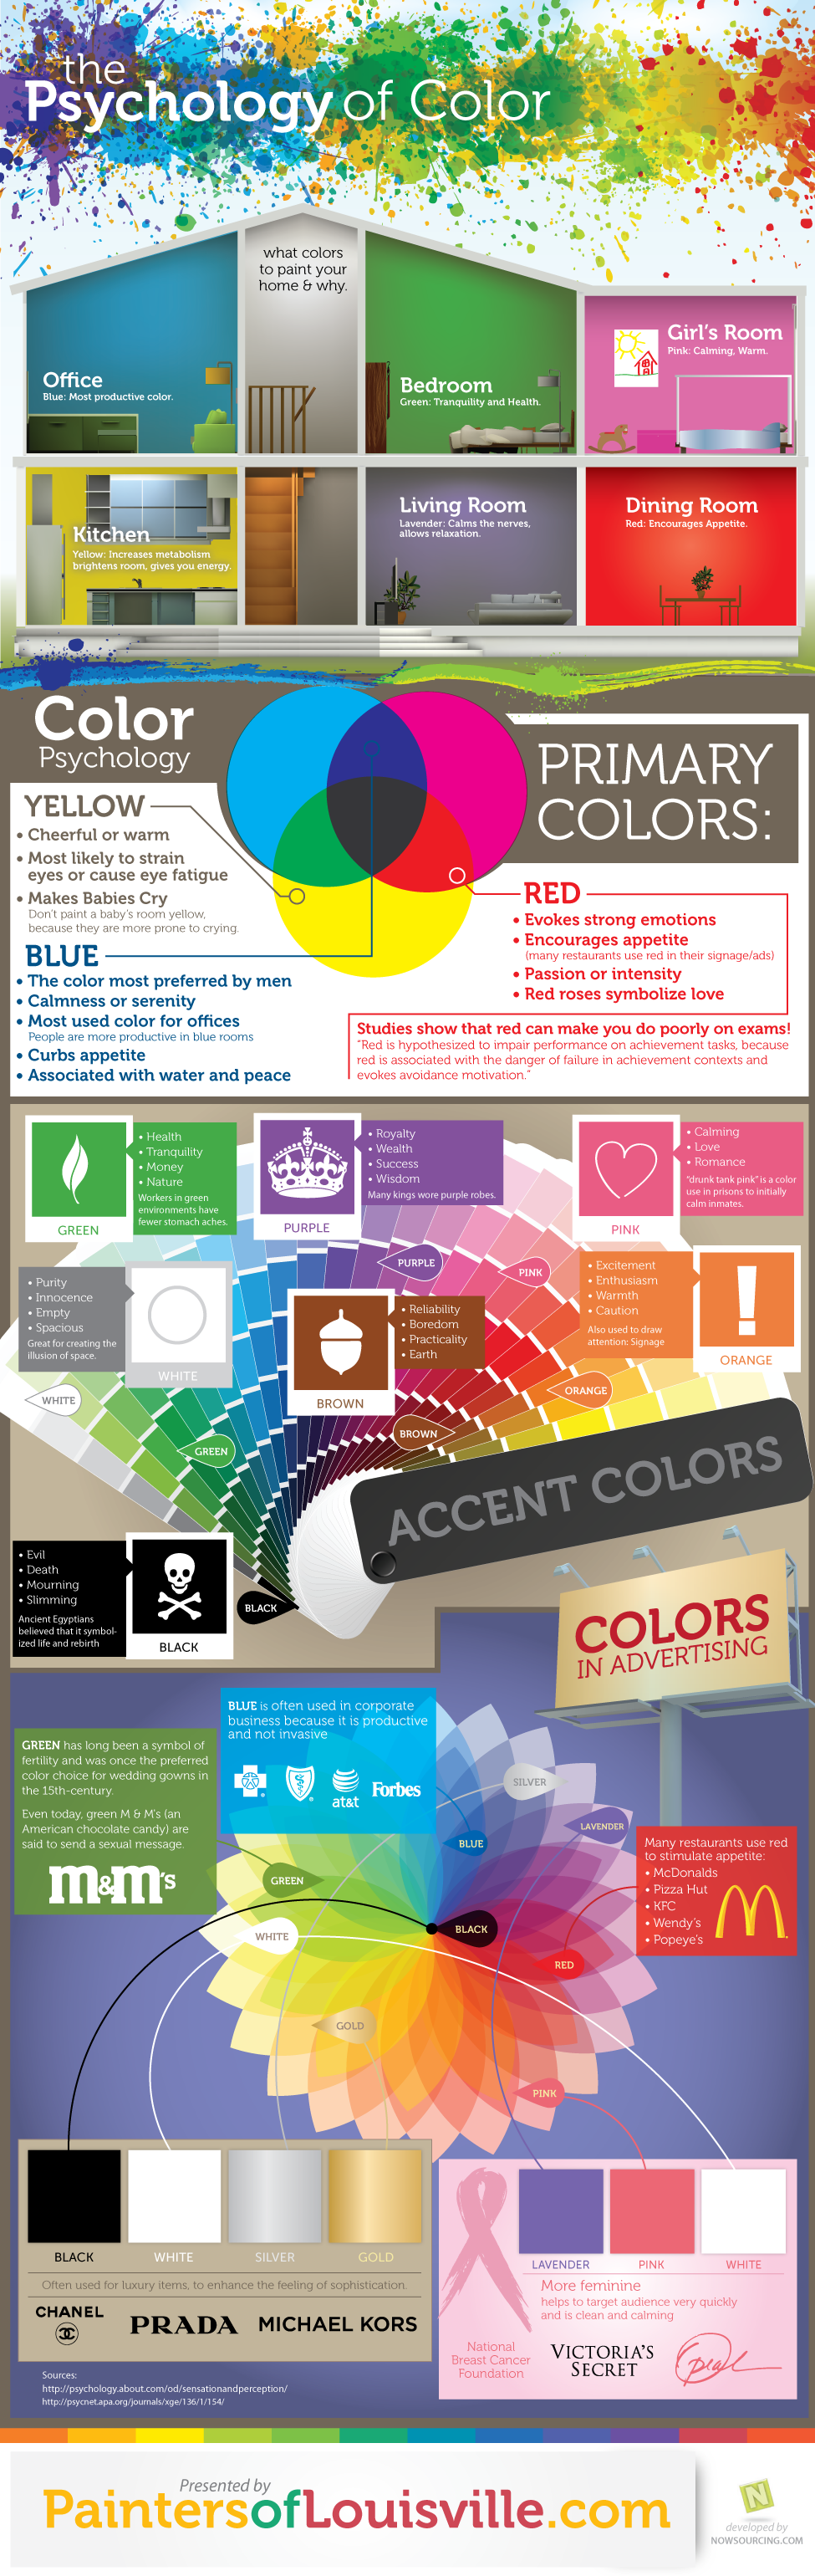 Color For Bedrooms Psychology Visualizing The Psychology Of Color Creative Psychology Of